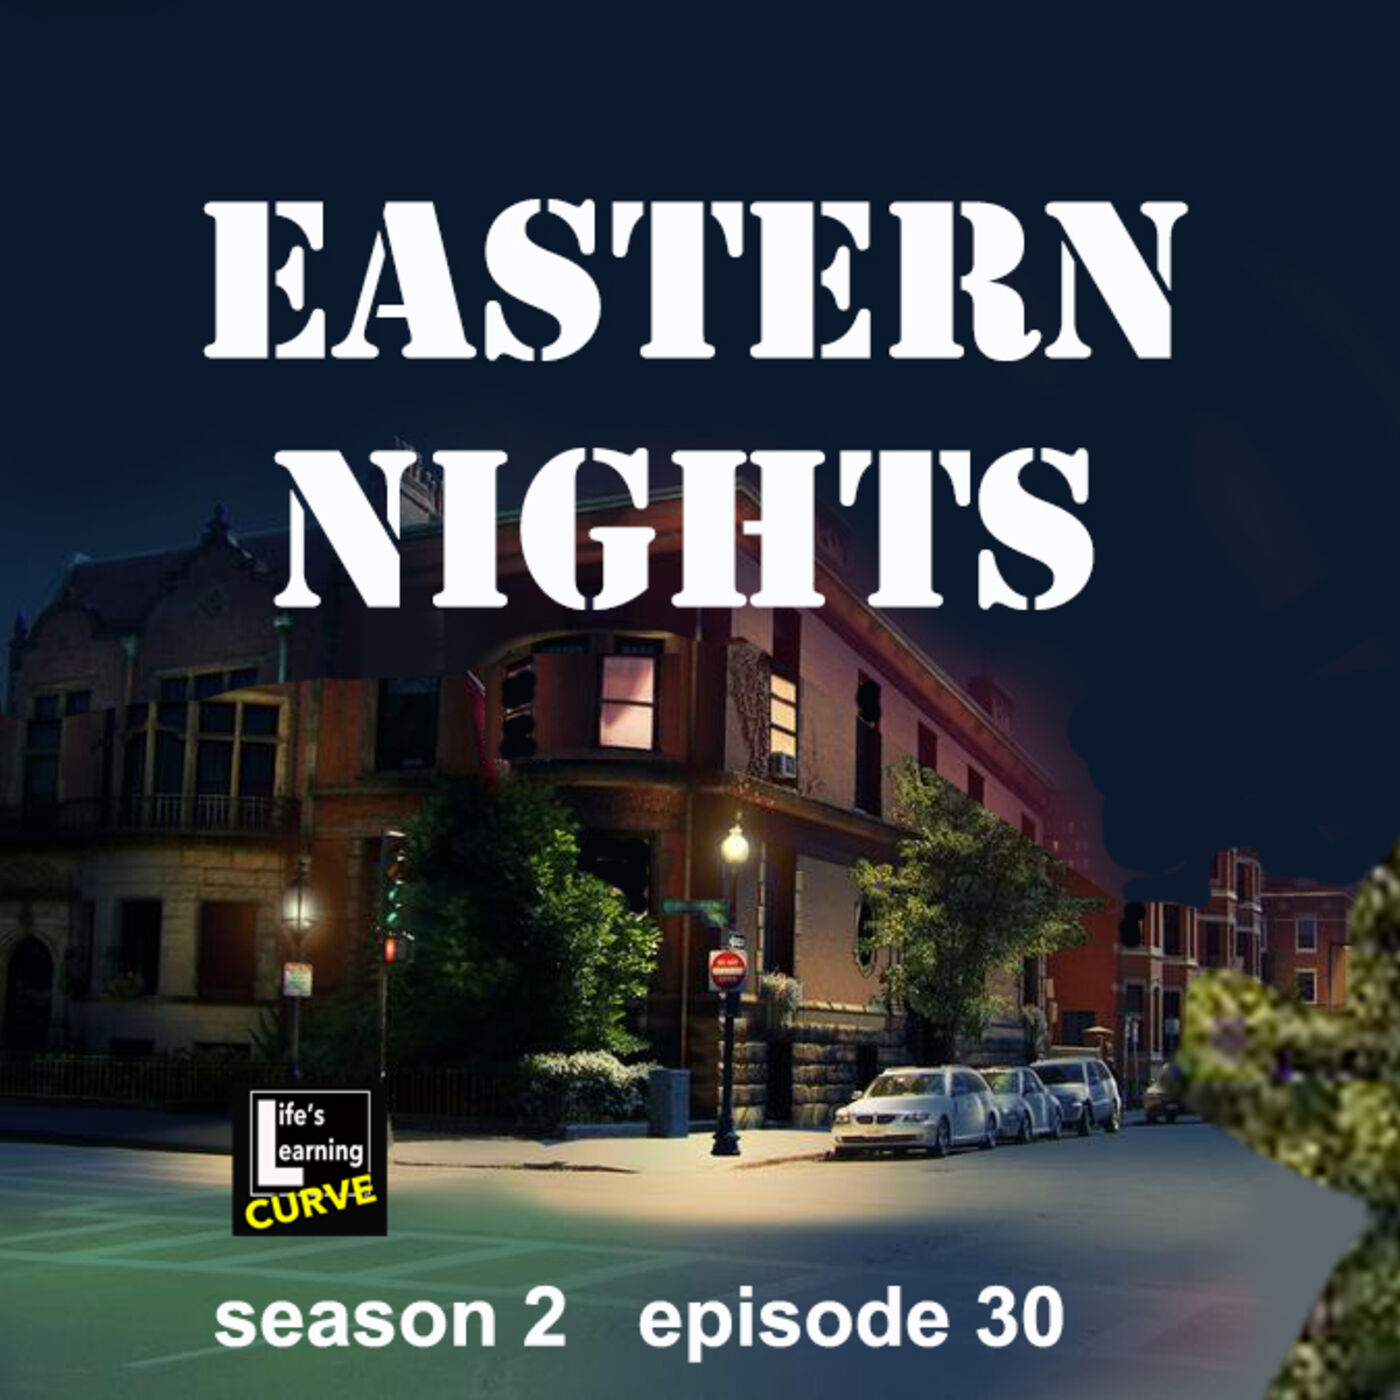 Eastern Nights